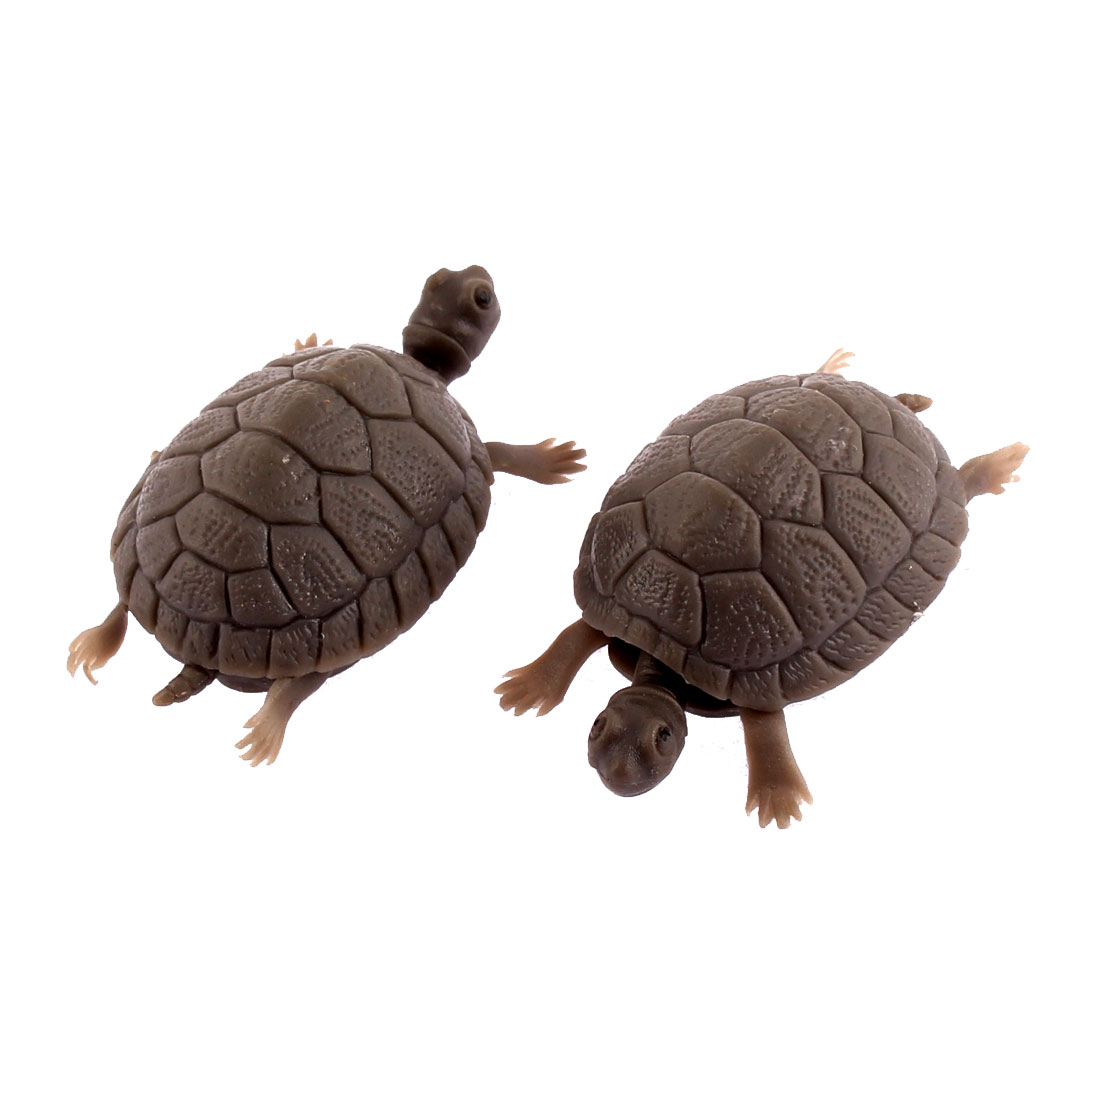 Fish Tank Plastic Tortoise Decor Aquarium Decorative Ornament 2pcs